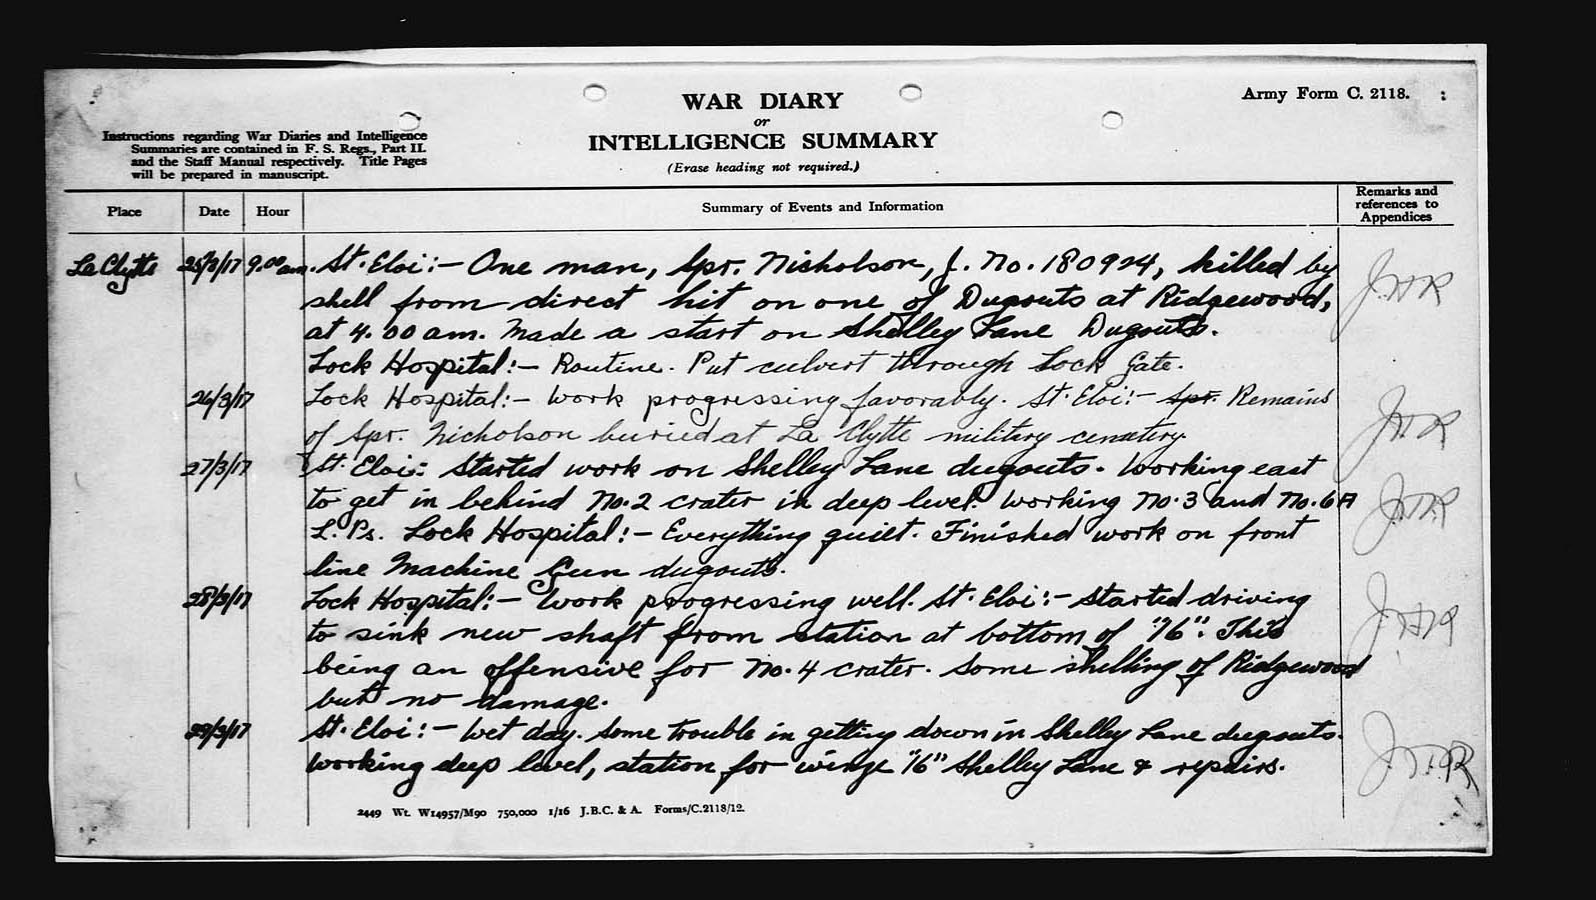 Wartime diary– Of the 1st Canadian Tunneling Company for March 1917. Image taken from web address of http://www.collectionscanada.gc.ca/lac-bac/results/images?module=images&SortSpec=score+desc&Language=eng&ShowForm=hide&SearchIn_1=mikanNumber&SearchInText_1=2004898&Operator_1=AND&SearchIn_2=&SearchInText_2=&Operator_2=AND&SearchIn_3=&SearchInText_3=&Level=&MaterialDateOperator=after&MaterialDate=&DigitalImages=1&Source=&ResultCount=10